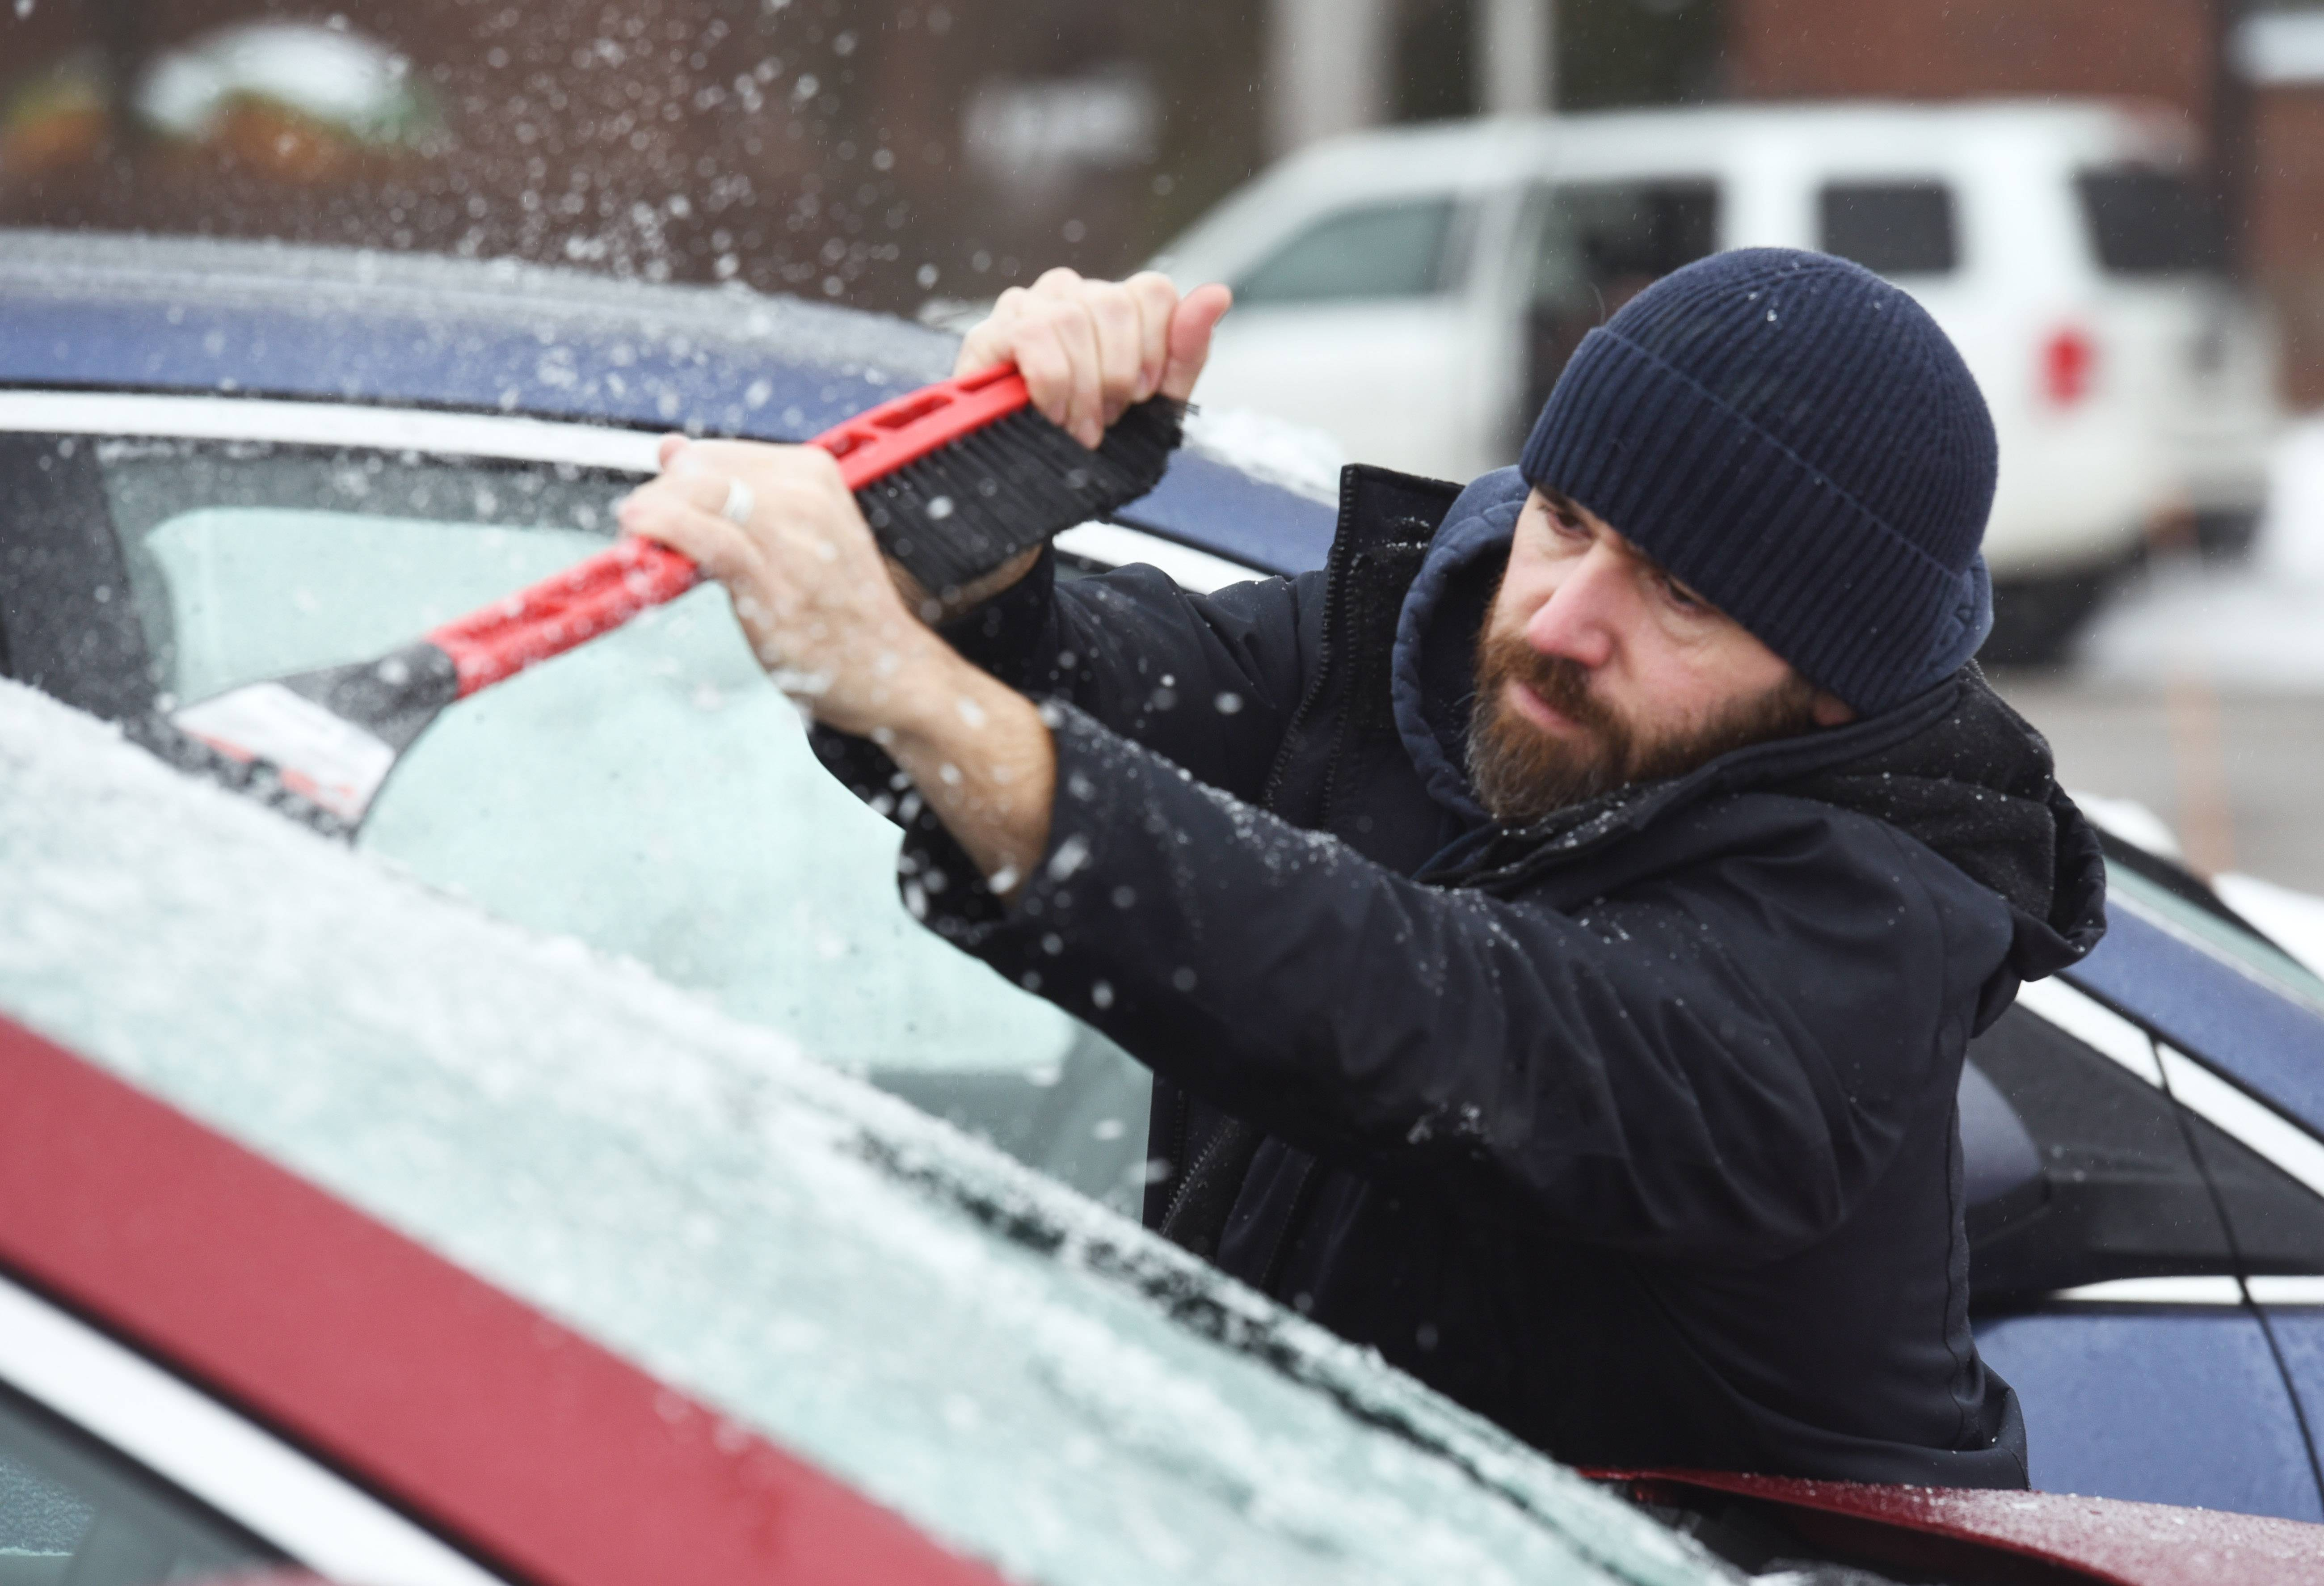 Michael Weaver of Libertyville scrapes ice off his windshield Tuesday at the Cook Park Library in Libertyville. Freezing rain moved into the area Tuesday morning.